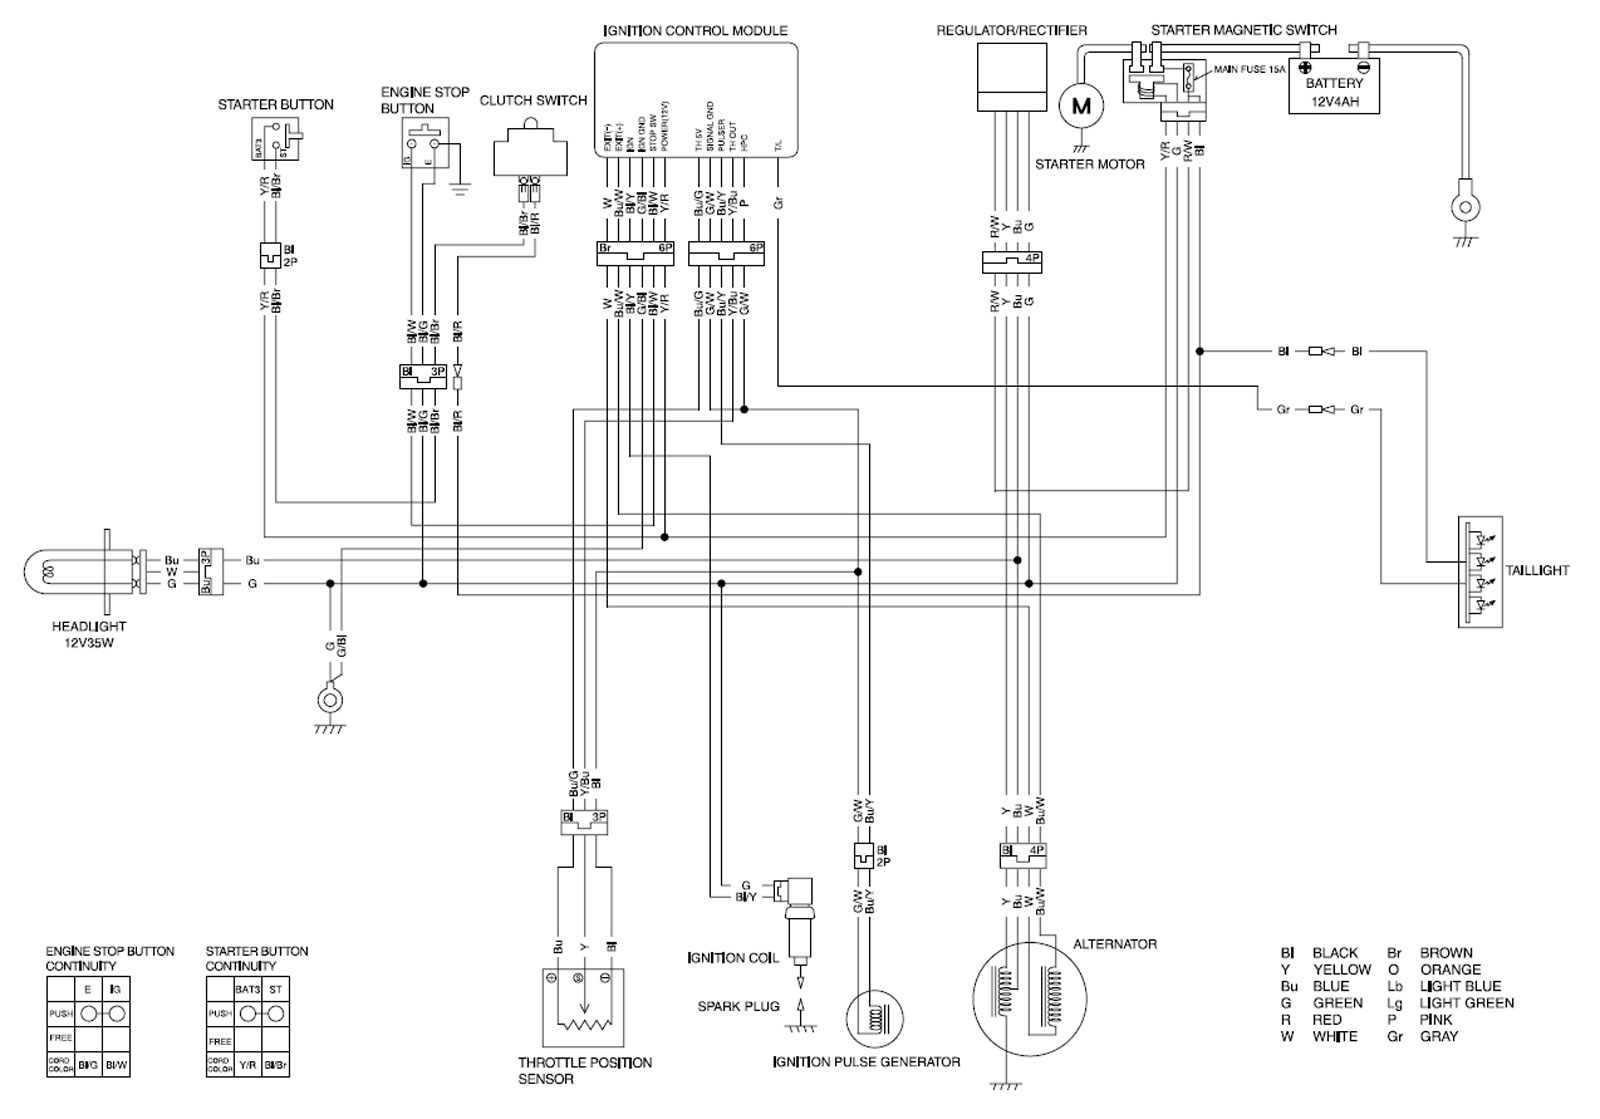 honda crf250x wiring diagram honda wiring diagrams instruction 2005 crf250r wiring diagram at alyssarenee.co